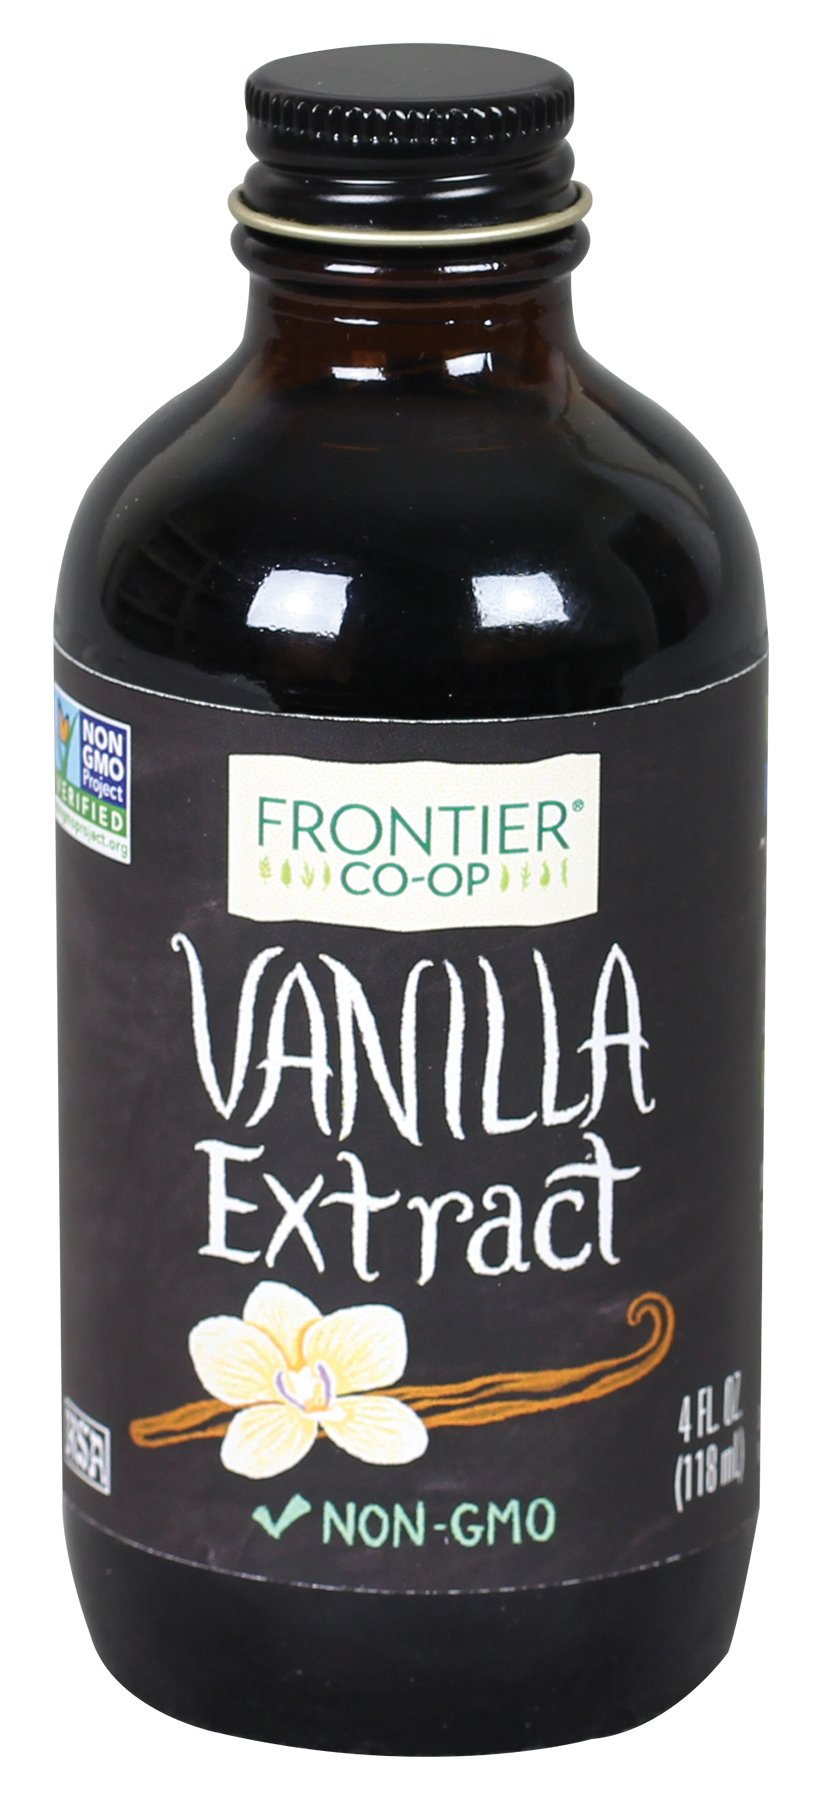 Frontier All-Natural Vanilla Extract, 4 Ounce by Frontier